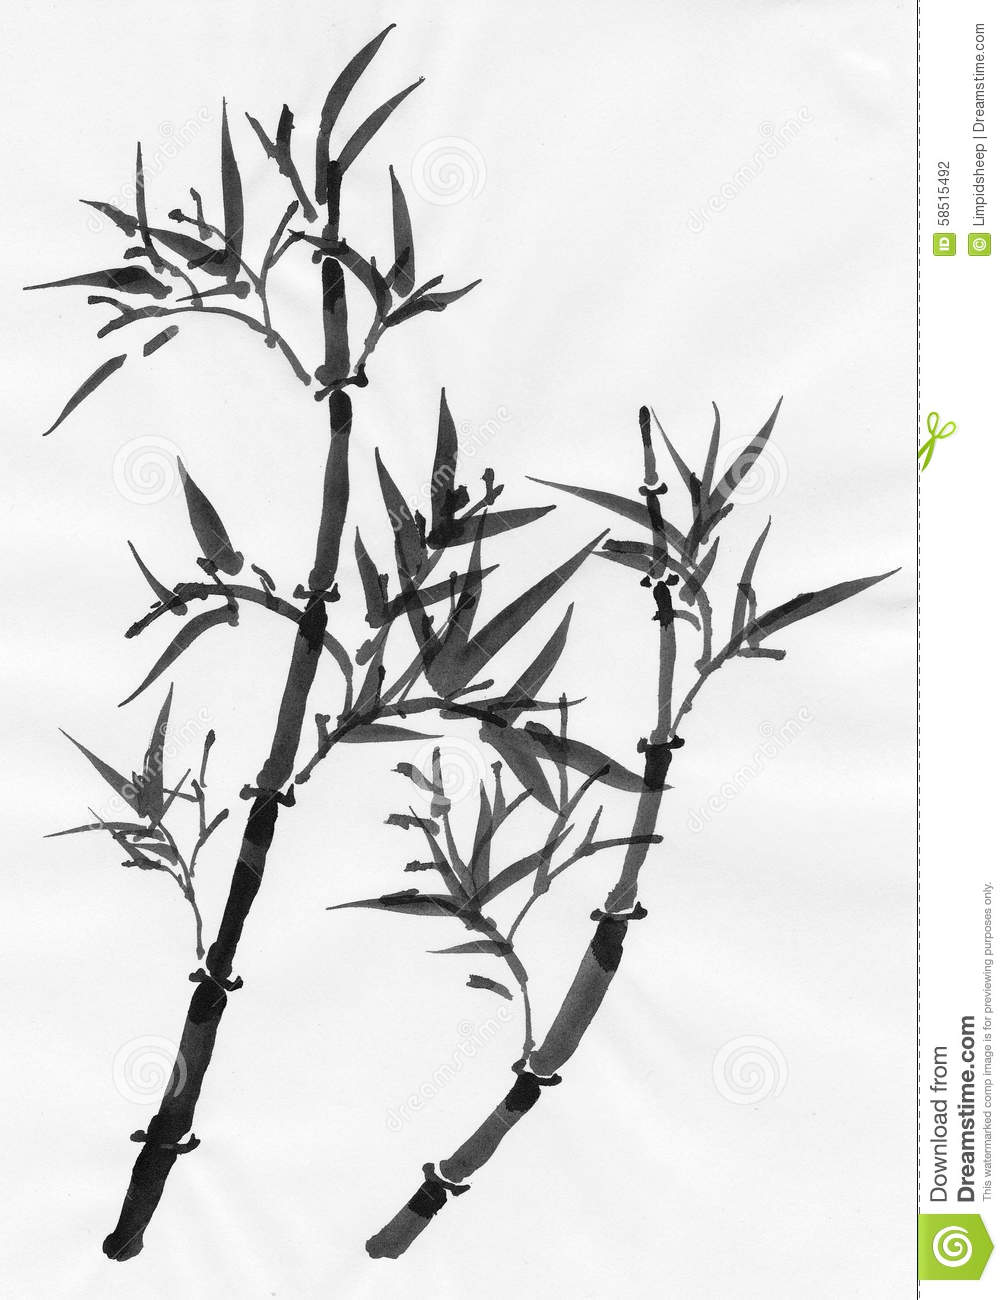 Chinese Art: Bamboo Stock Illustration - Image: 58515492